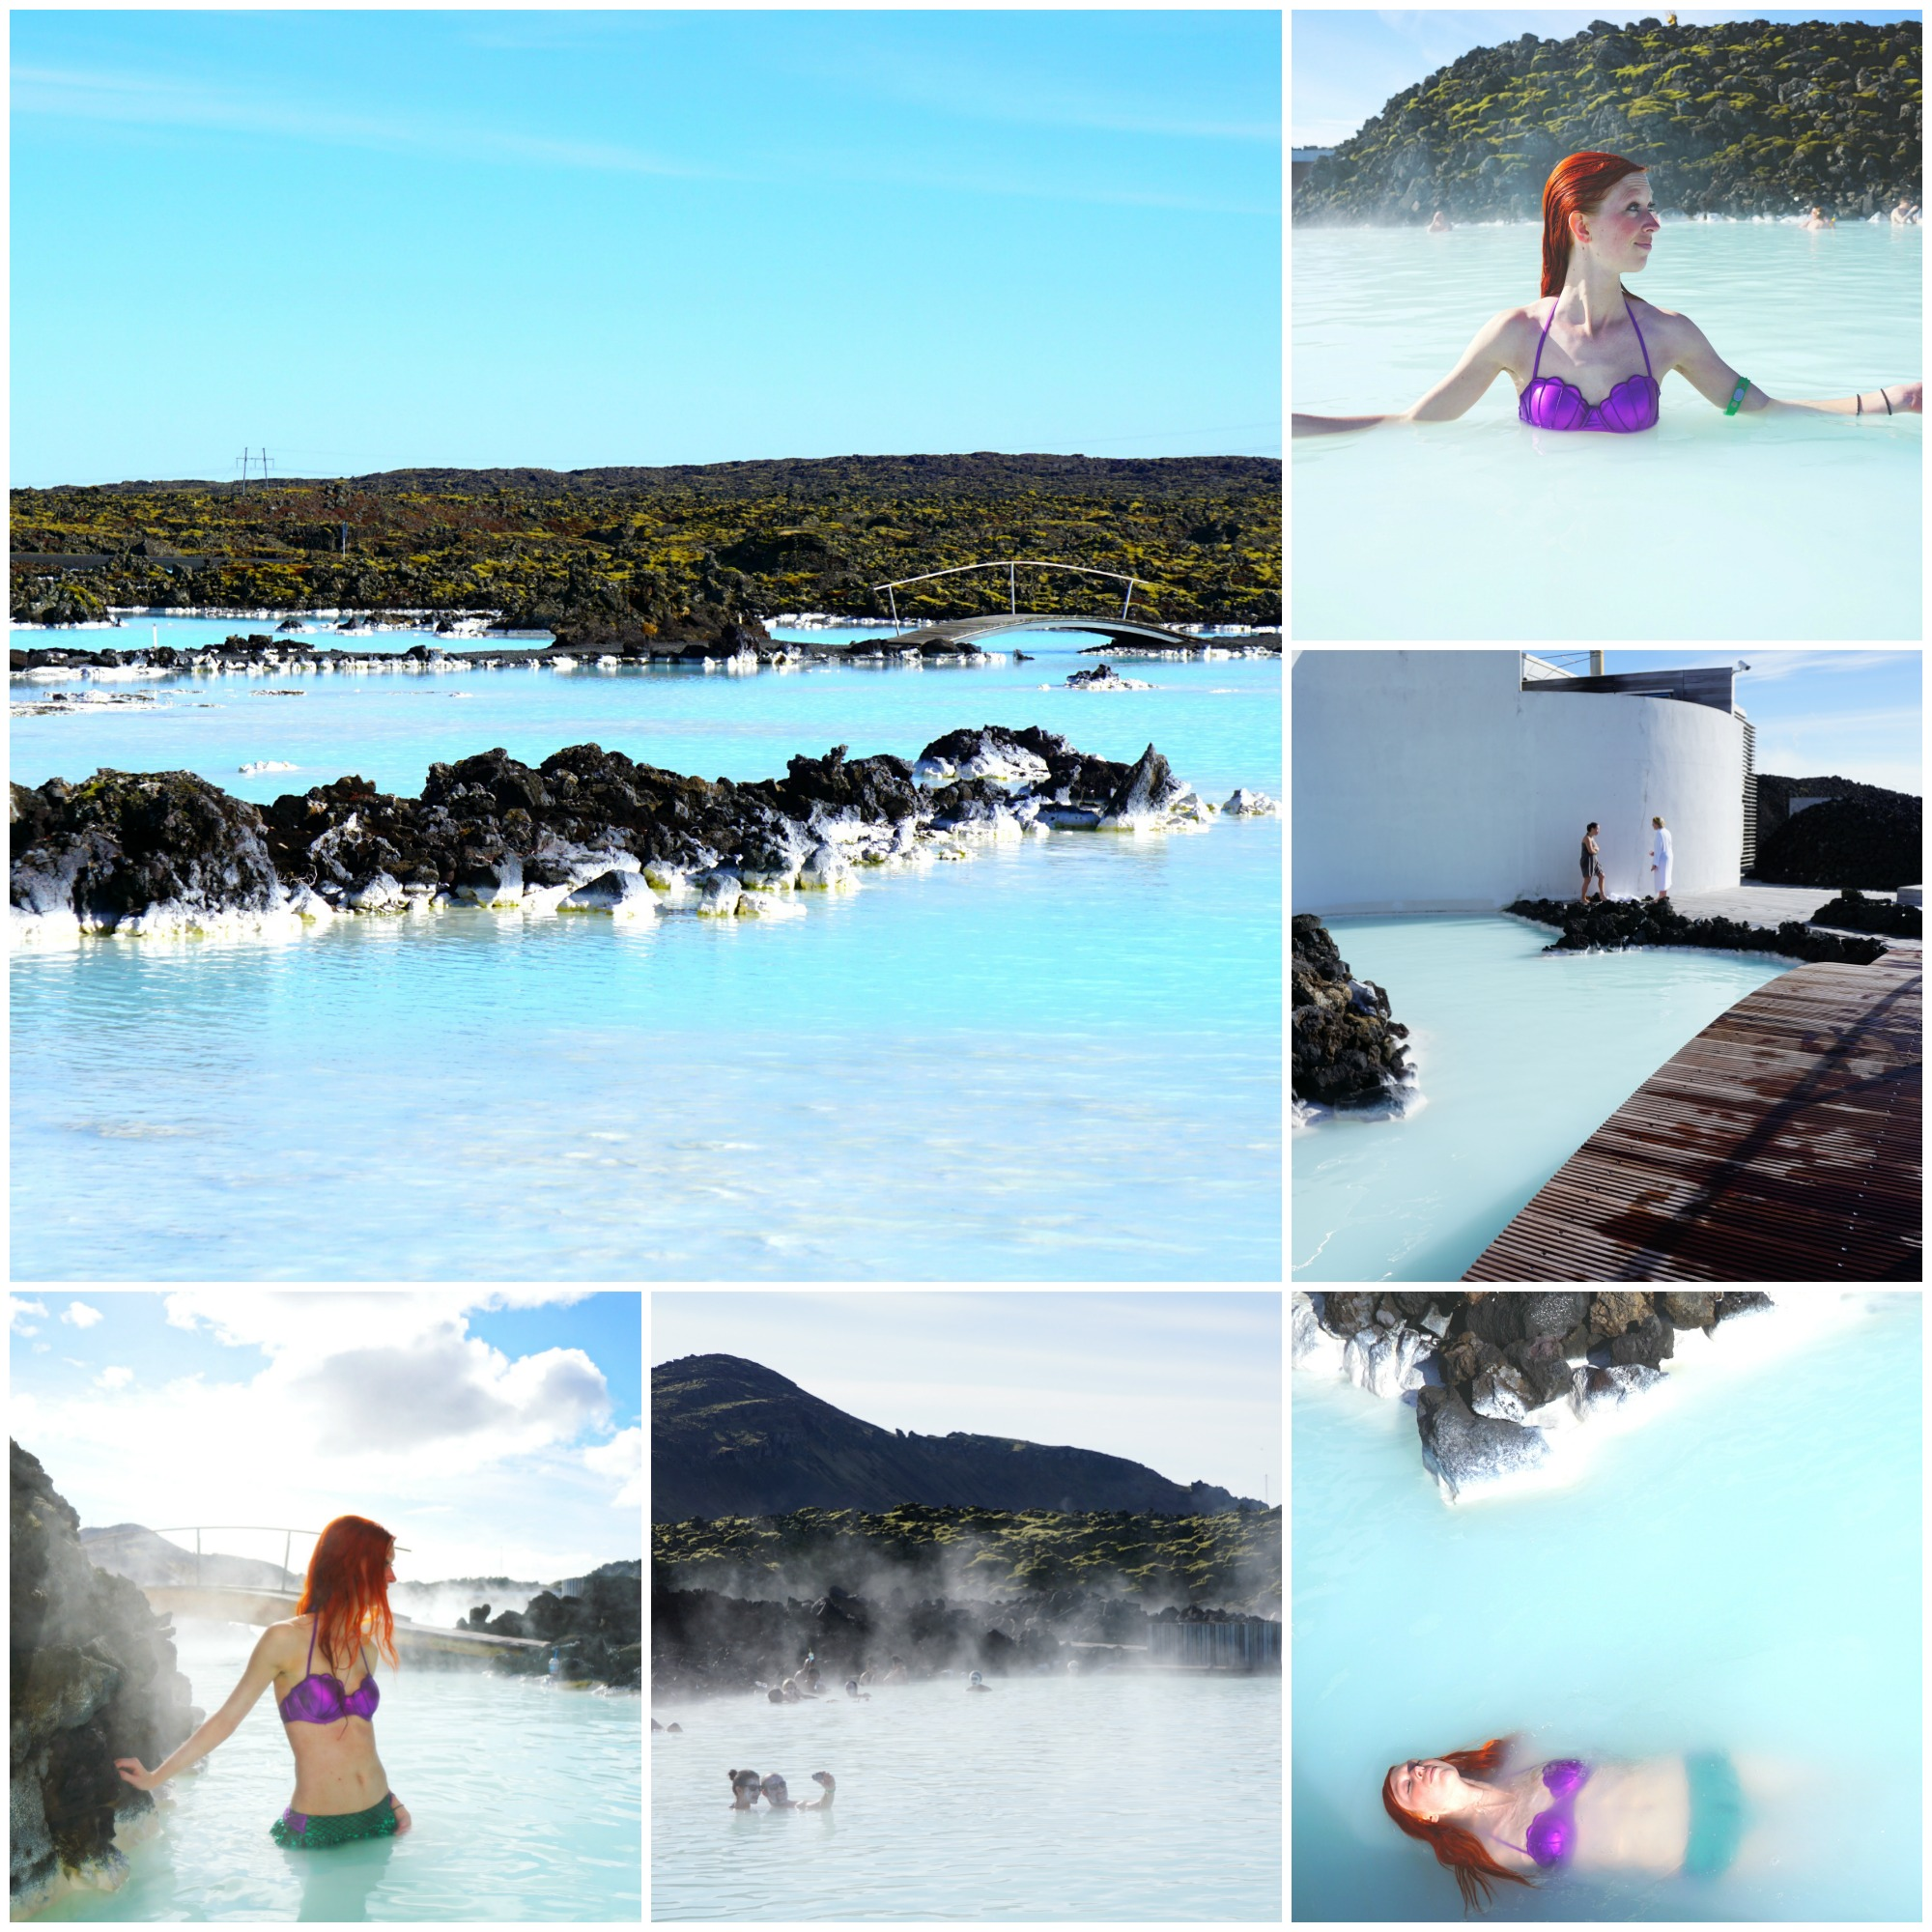 The Blue Lagoon collage